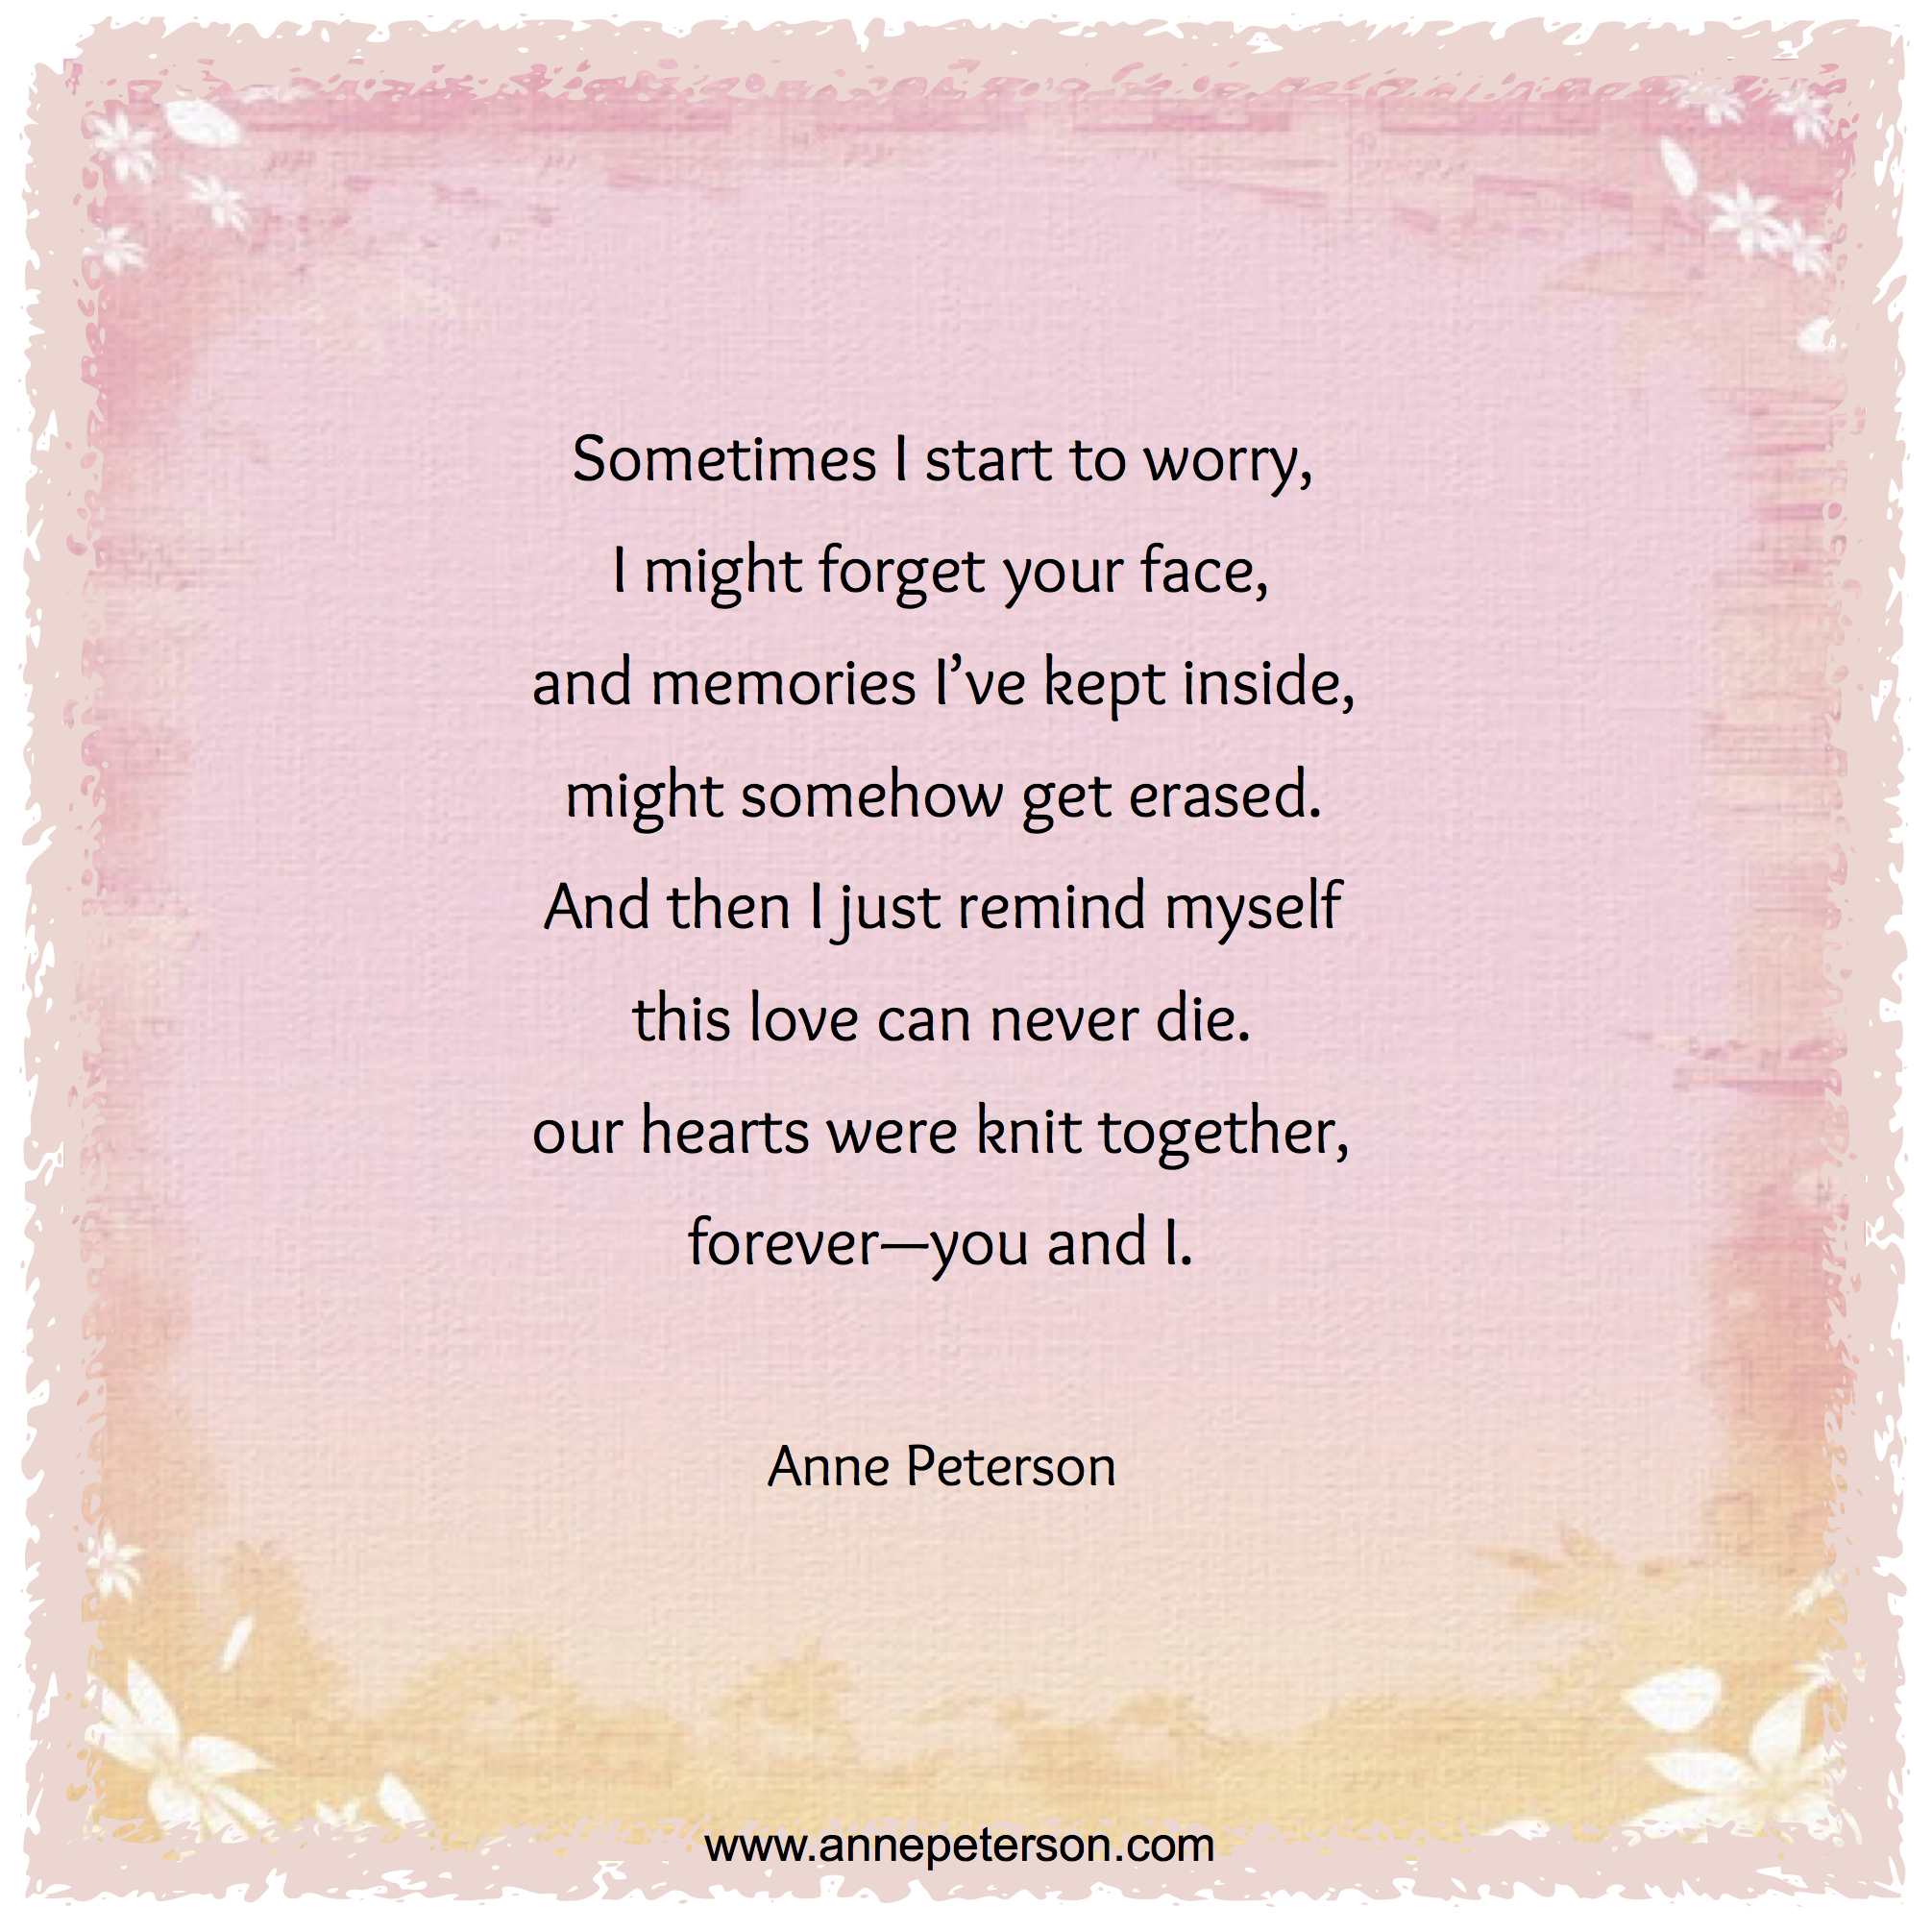 Fear Of Forgetting Loved One Grief Loss Hearts Are Knit Together Poetry Anne Peterson Www Annepeterson Grief Healing Loved One In Heaven Mourning Quotes